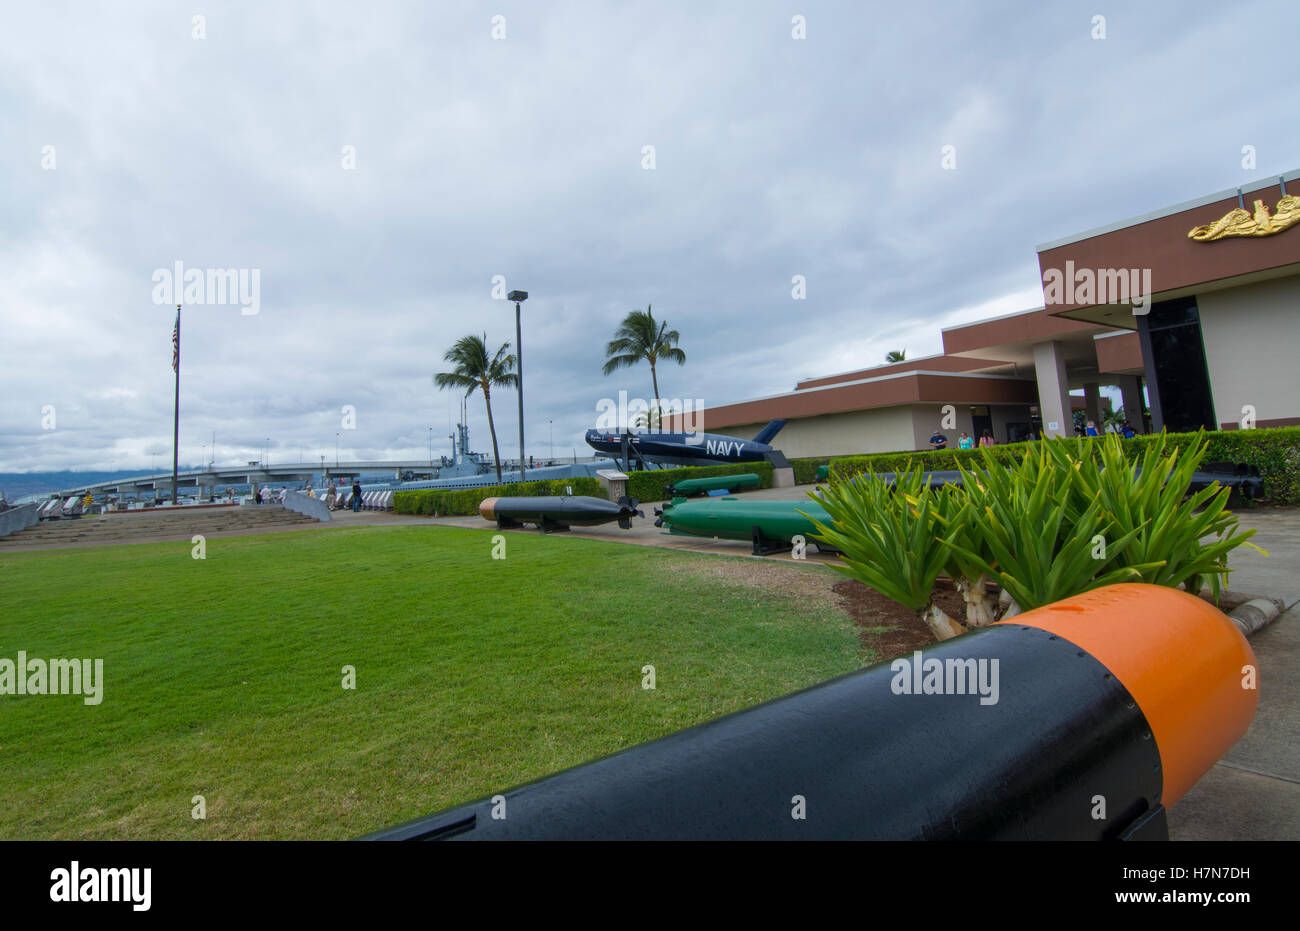 Honolulu, Hawaii Pearl Harbor Memorial war dead Japan bombing, old torpedos on display - Stock Image